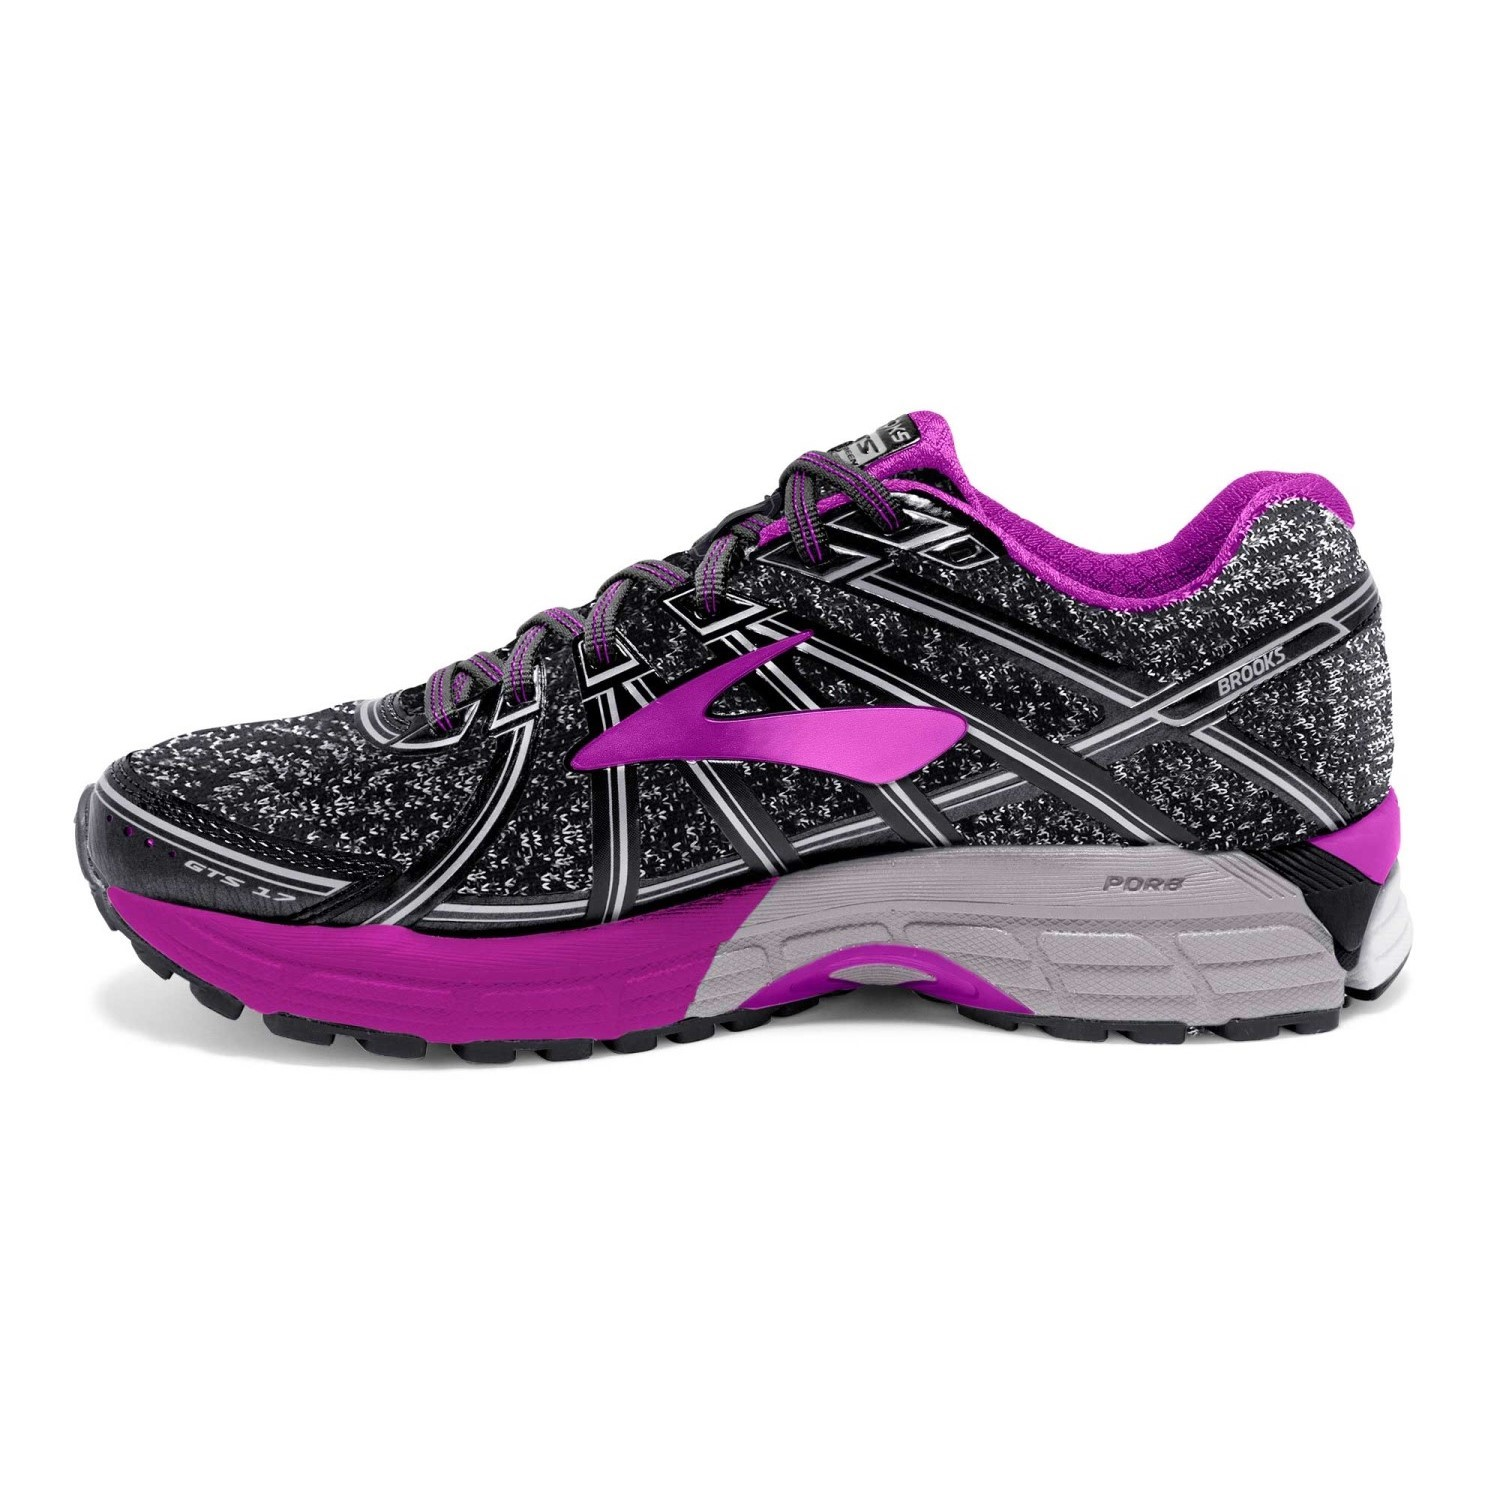 74b436ff0b3ef Brooks Knitted Adrenaline GTS 17 - Womens Running Shoes - Charcoal Black  Purple